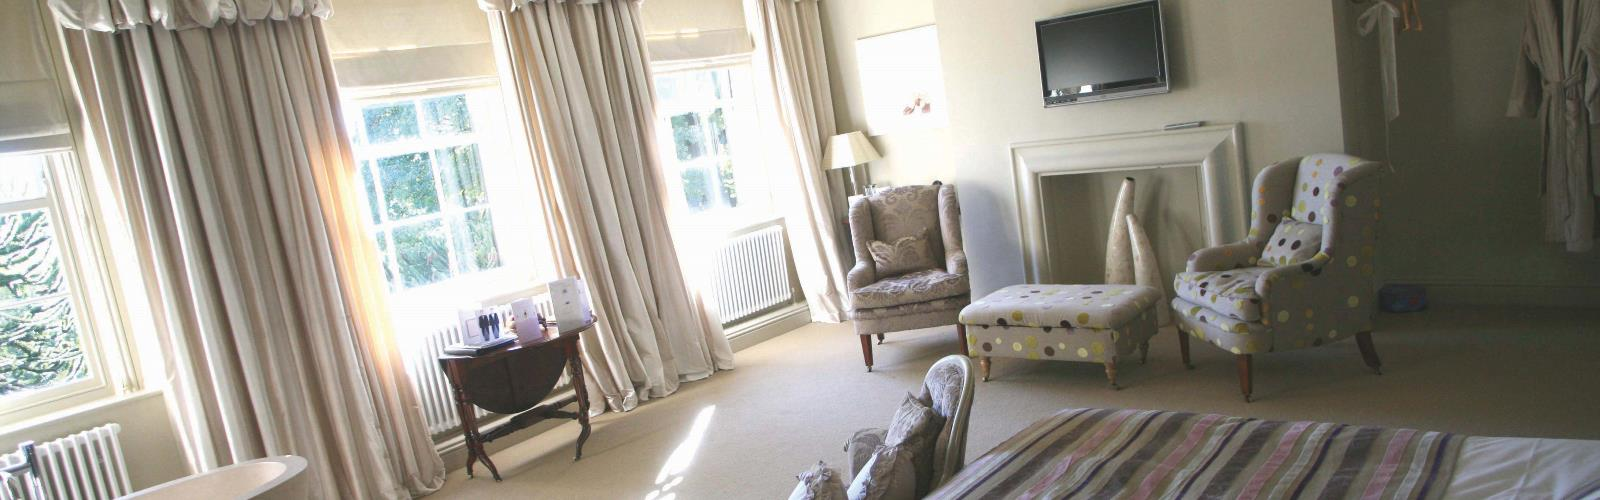 mosborough-hall-hotel-bedrooms-06-83732